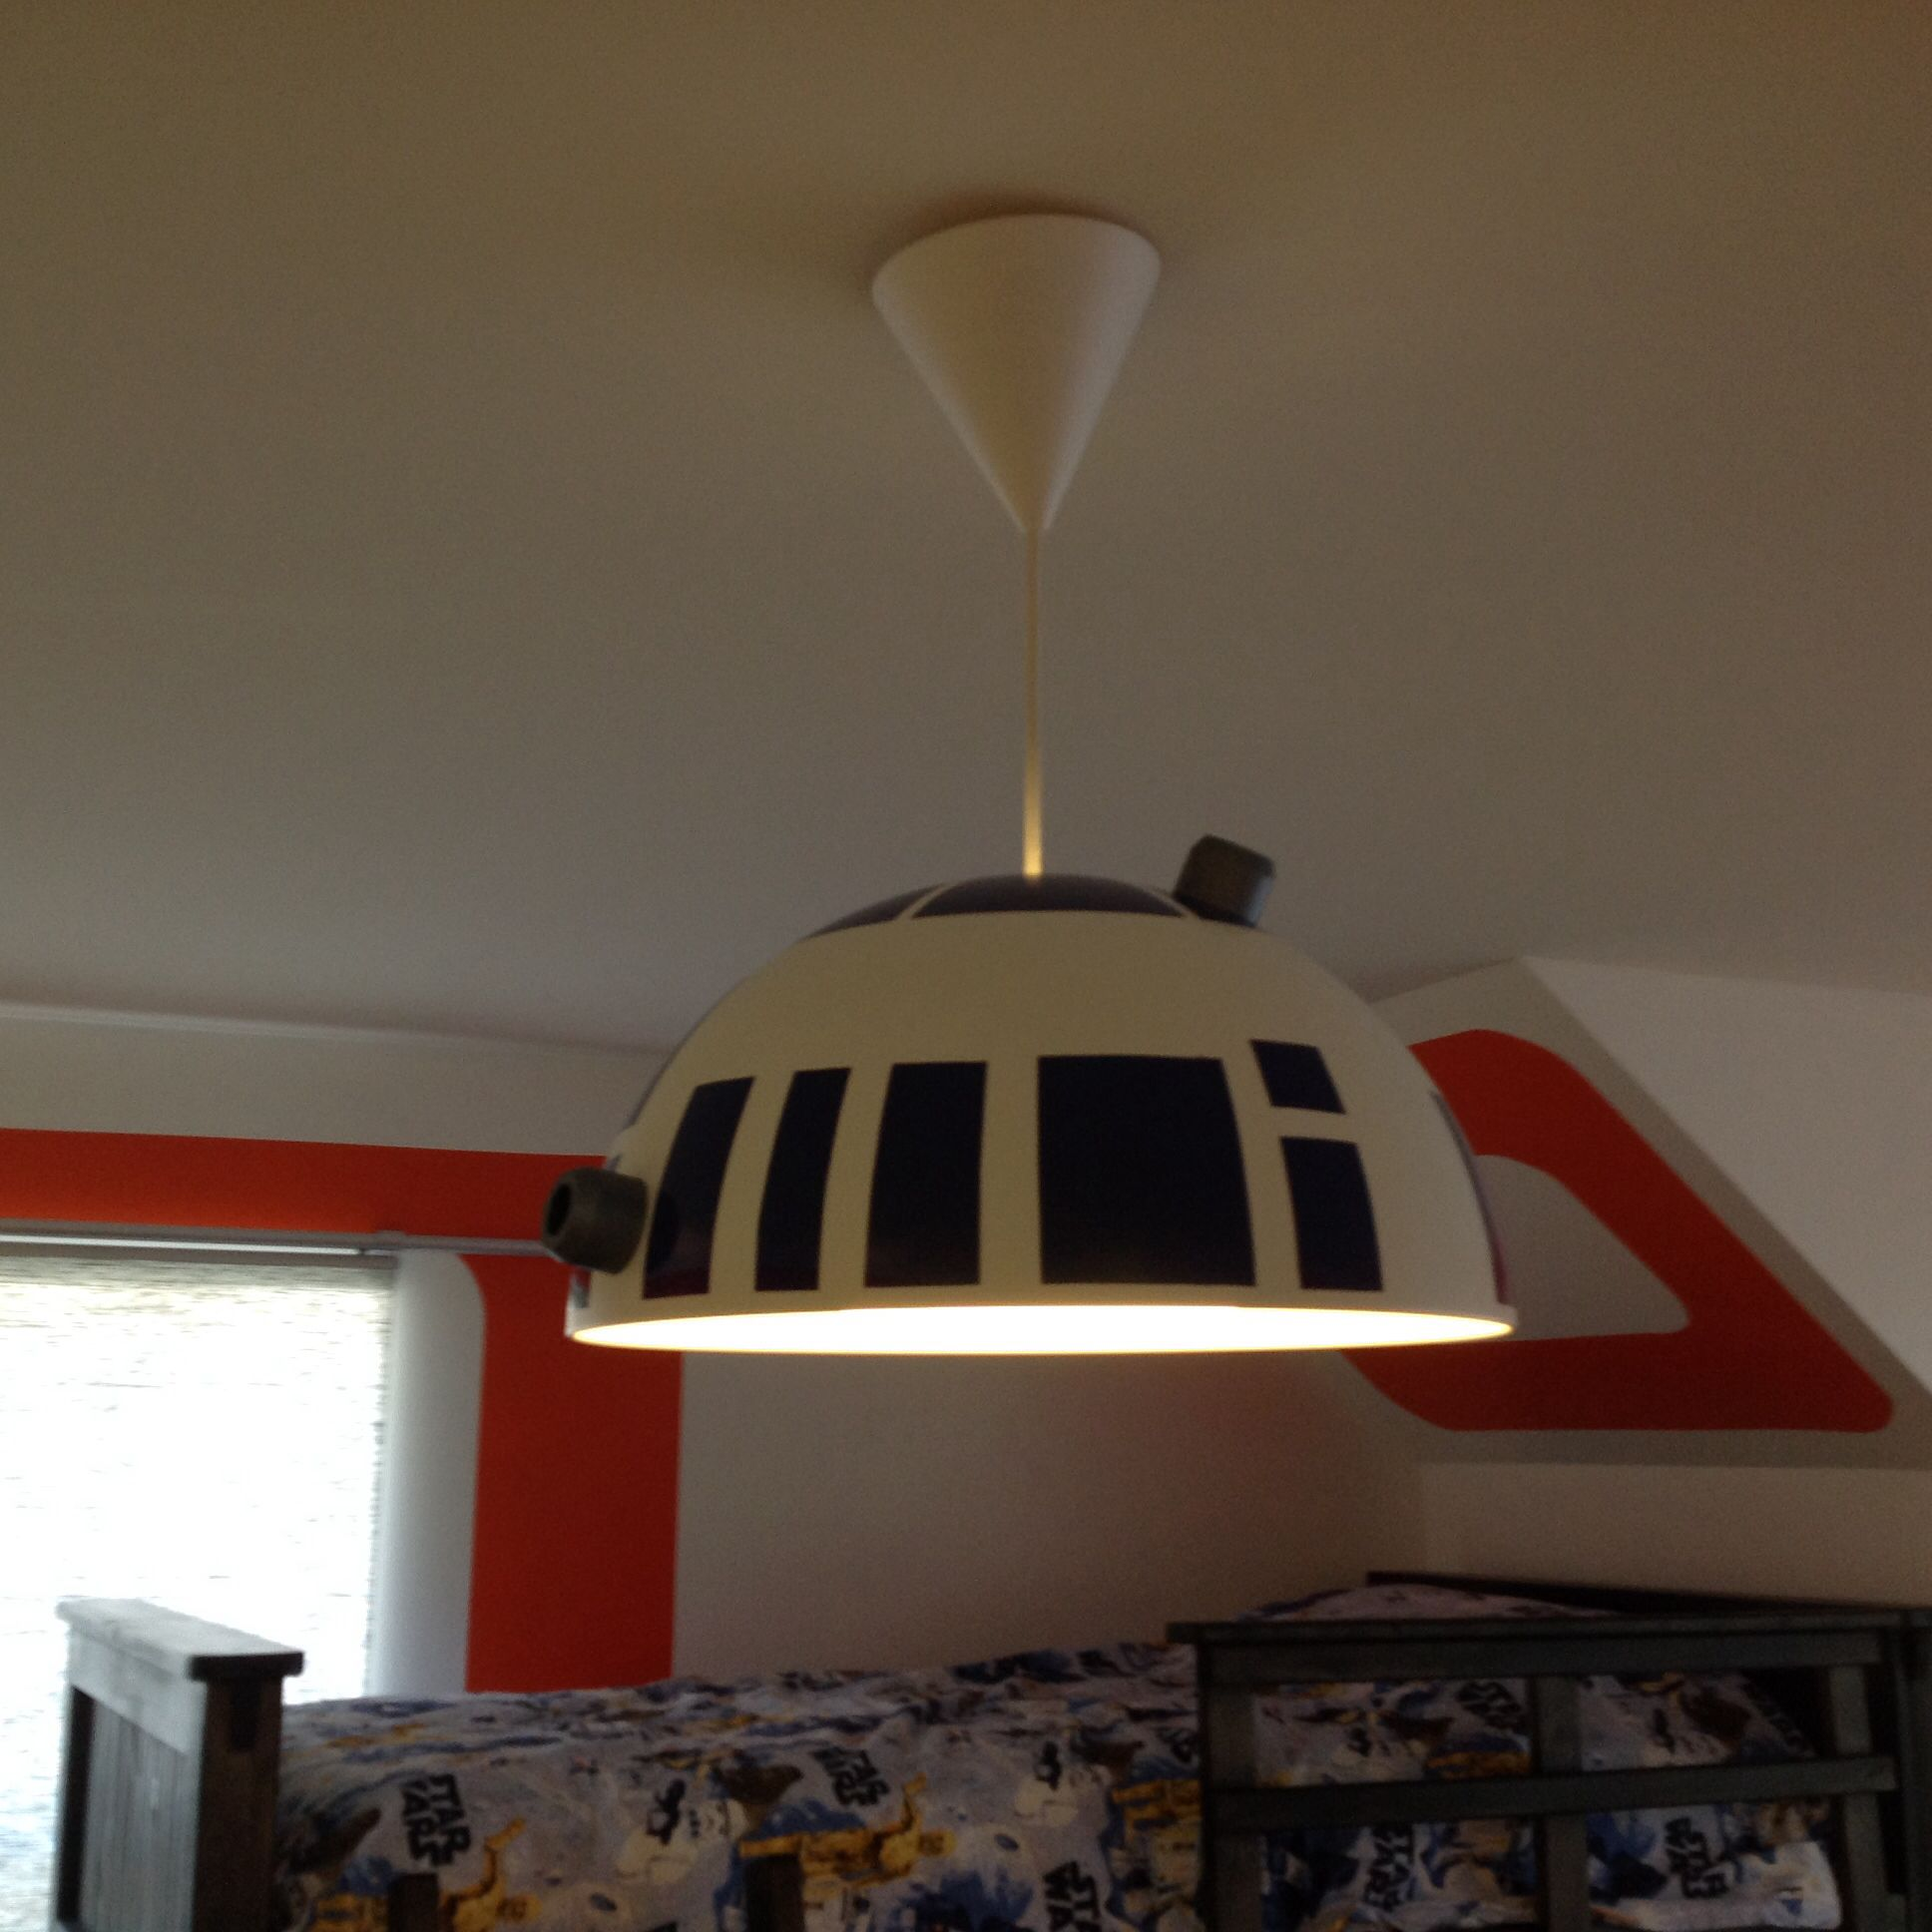 star wars inspired bedroom for 7 year old boy r2d2 pendant light made from ikea light fixture. Black Bedroom Furniture Sets. Home Design Ideas